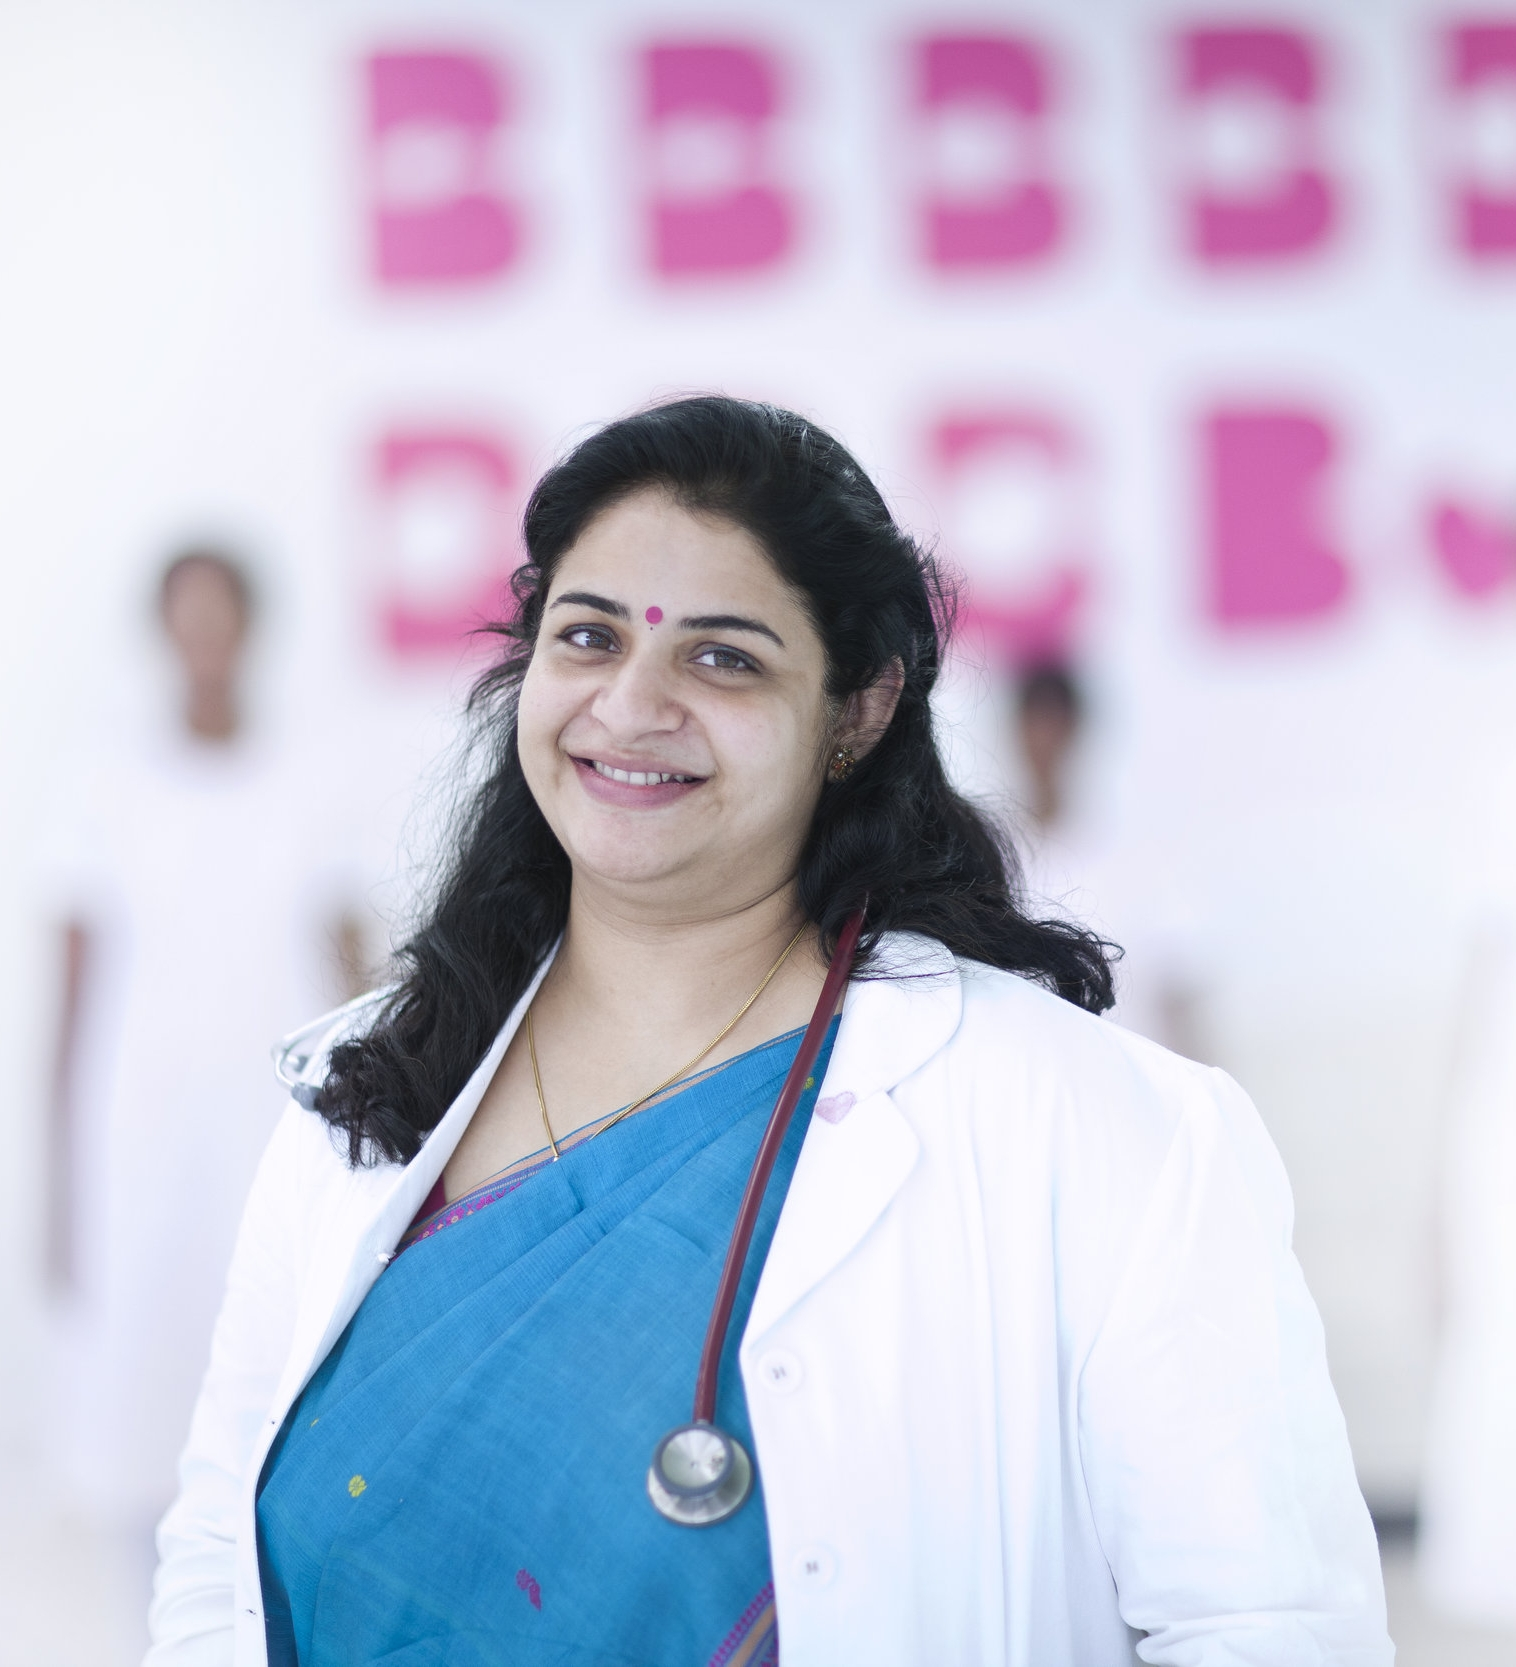 Dr. Pratibha Narayan is a Senior Obstetrician and Gynecologist at the Birthplace. In addition to her passion for obstetrics and preventive women's health, she an expert with many years of experience in VBAC. She excels and specializes in managing and treating routine and high-risk pregnancies, and recurrent pregnancy losses.  To know more or to meet Dr. Pratibha, please call 040-45208108. You can also write to her at  contactus@thebirthplace.com  or visit www.thebirthplace.com